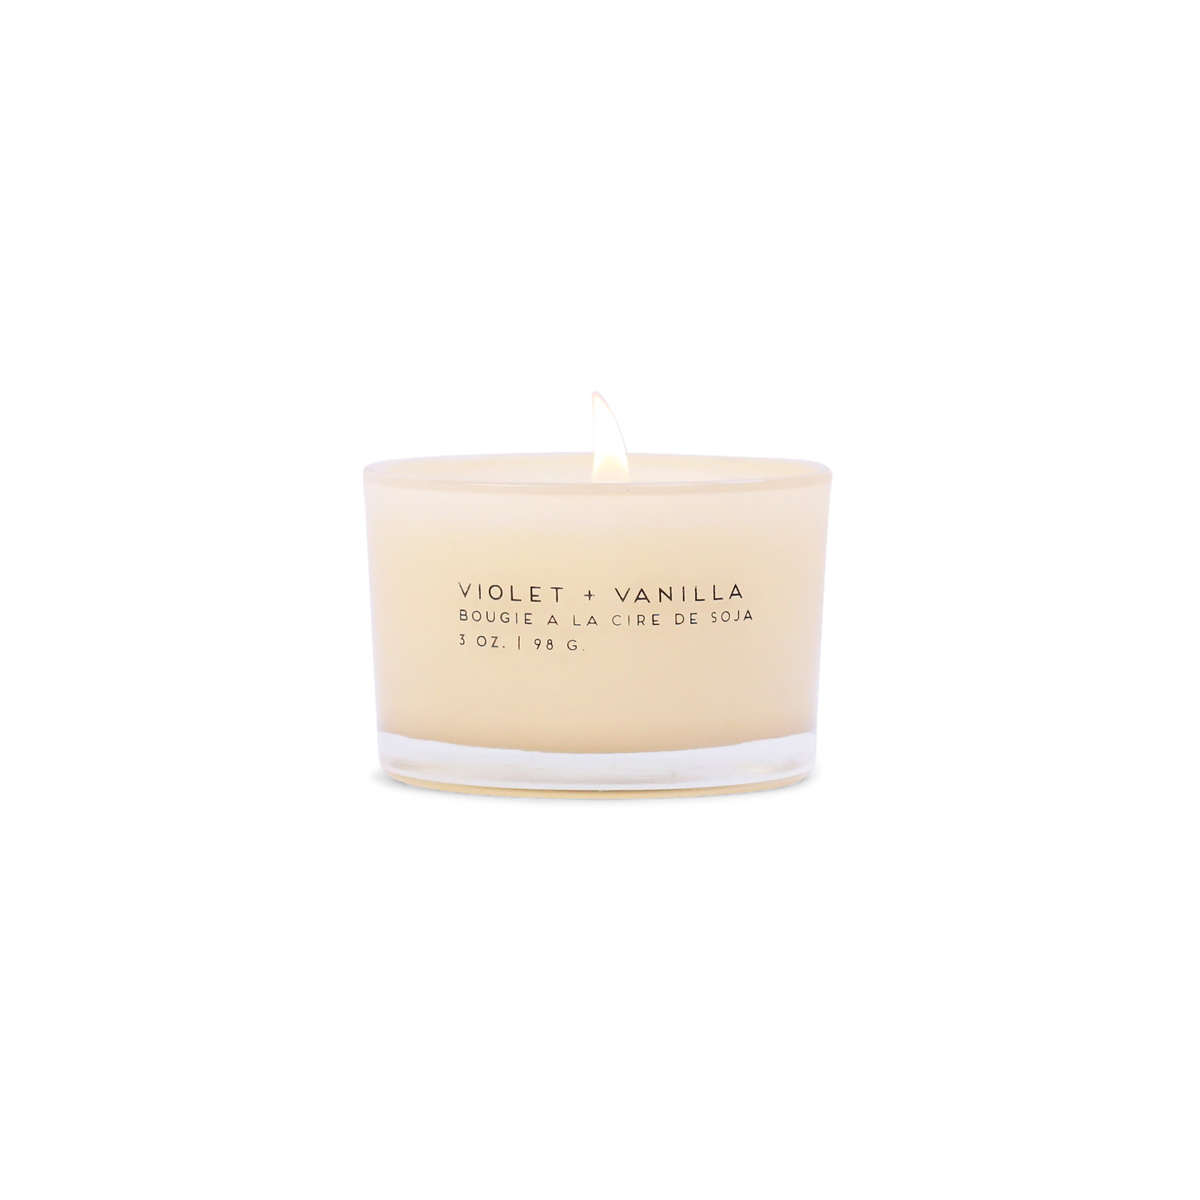 Paddywax 3 oz. Violet + Vanilla Statement Candle